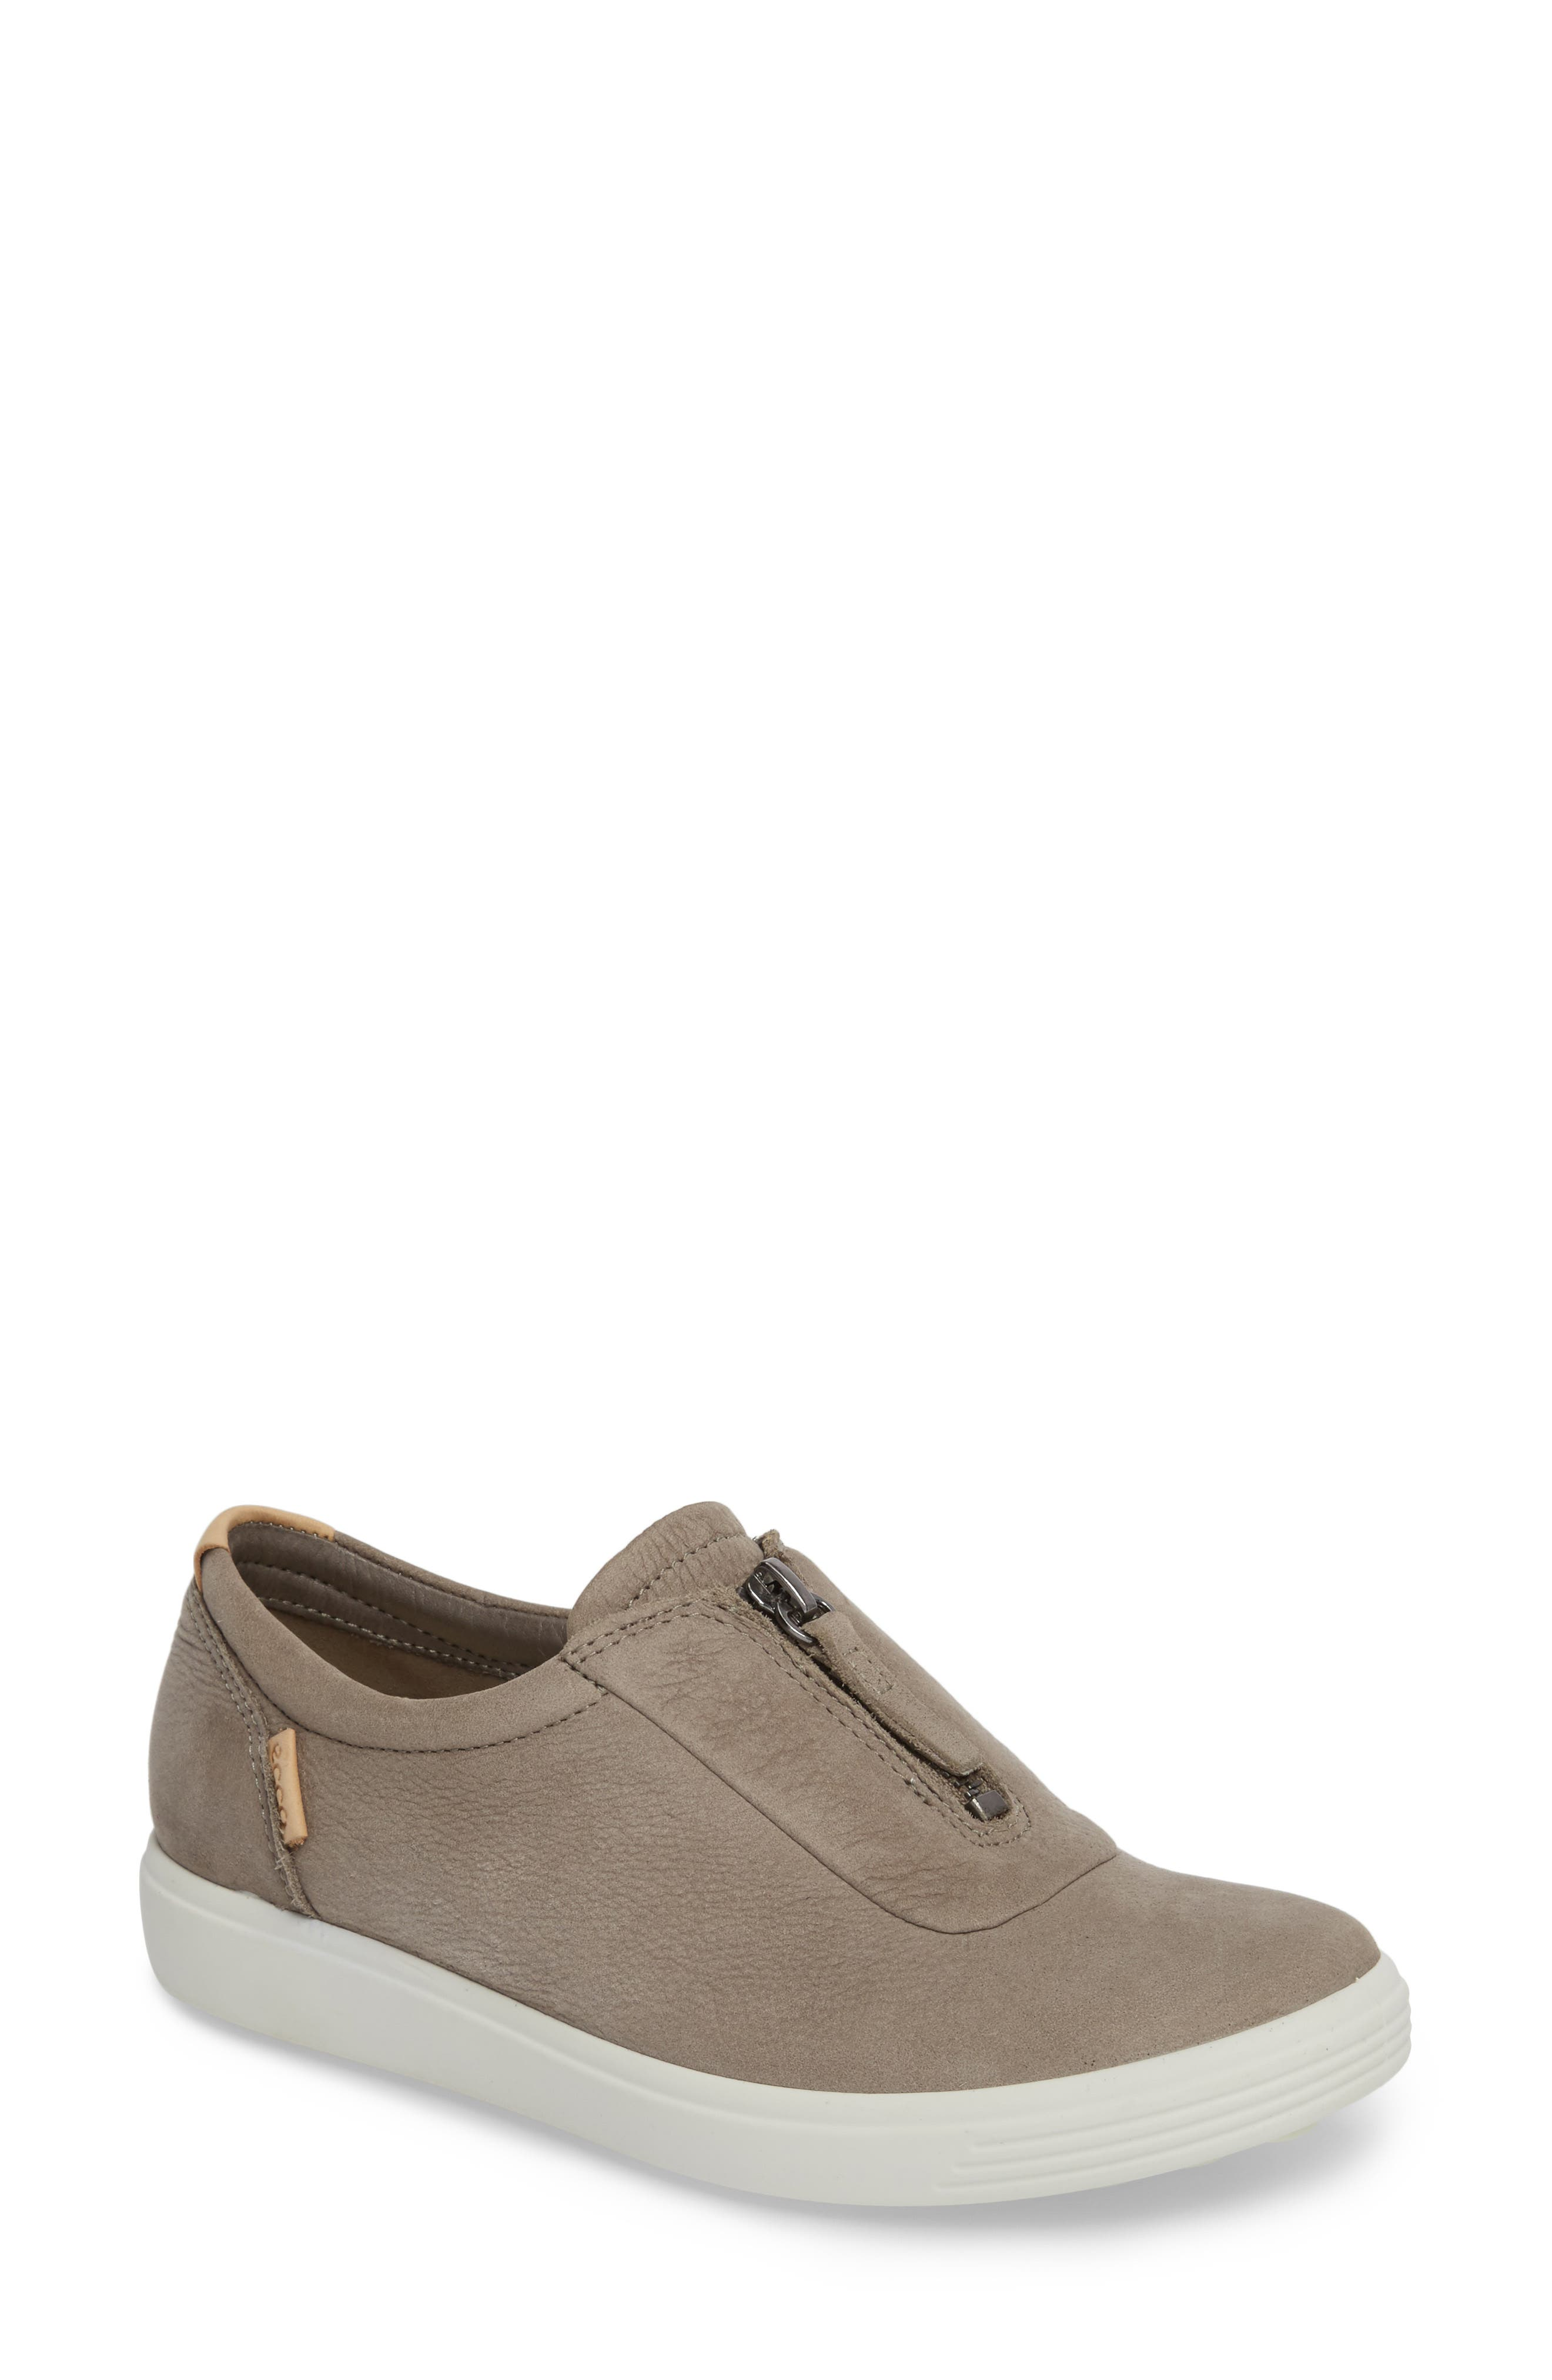 Soft 7 Slip-On Sneaker,                             Main thumbnail 1, color,                             WARM GREY LEATHER